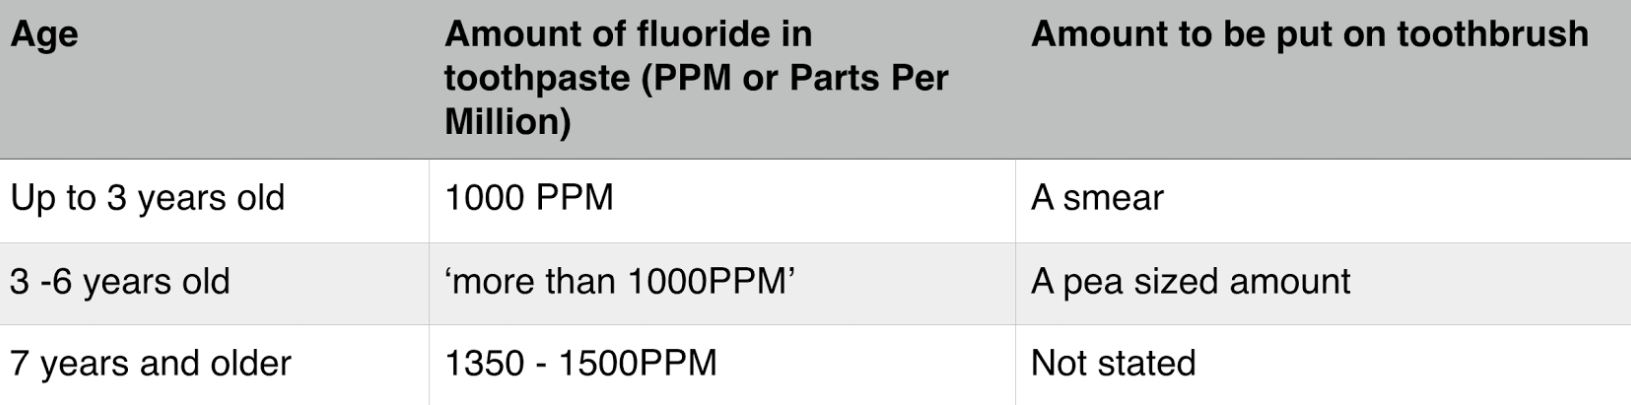 amount of fluoride in toothpaste